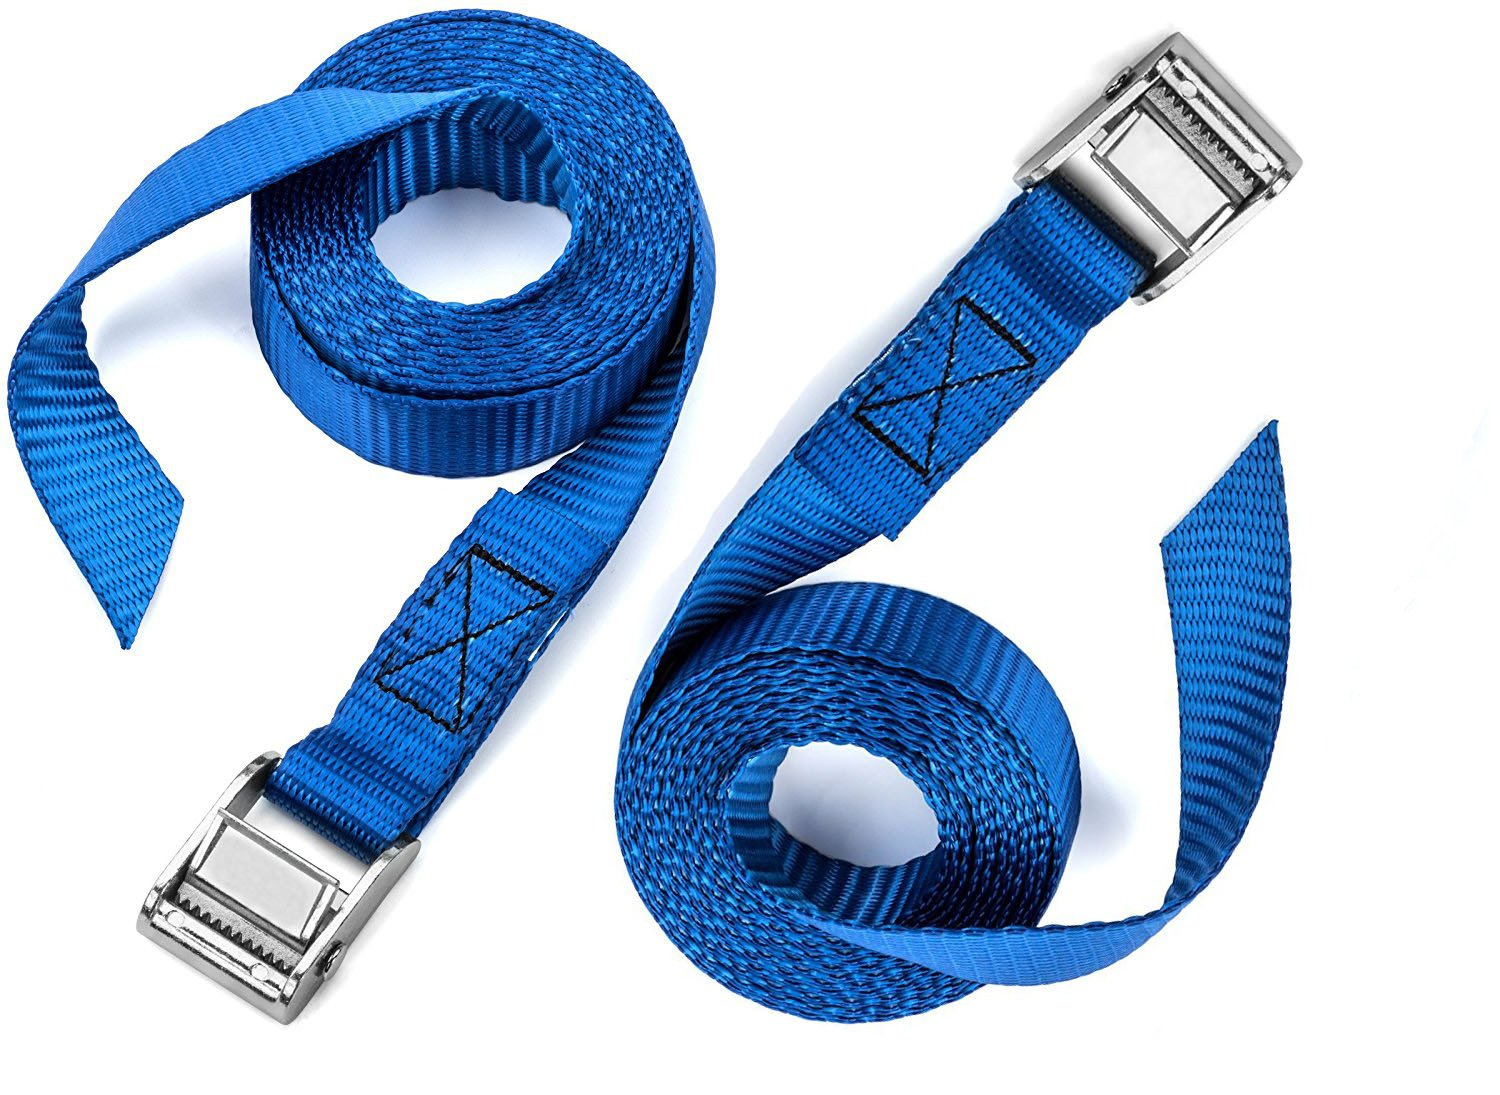 2 PCS of Premium Lashing Straps by VVHOOY - 12 Ft Long - Rated 250 lbs - for Roof Racks Moving Canoes and Tie Down Strap for Kayaks Carriers Blue